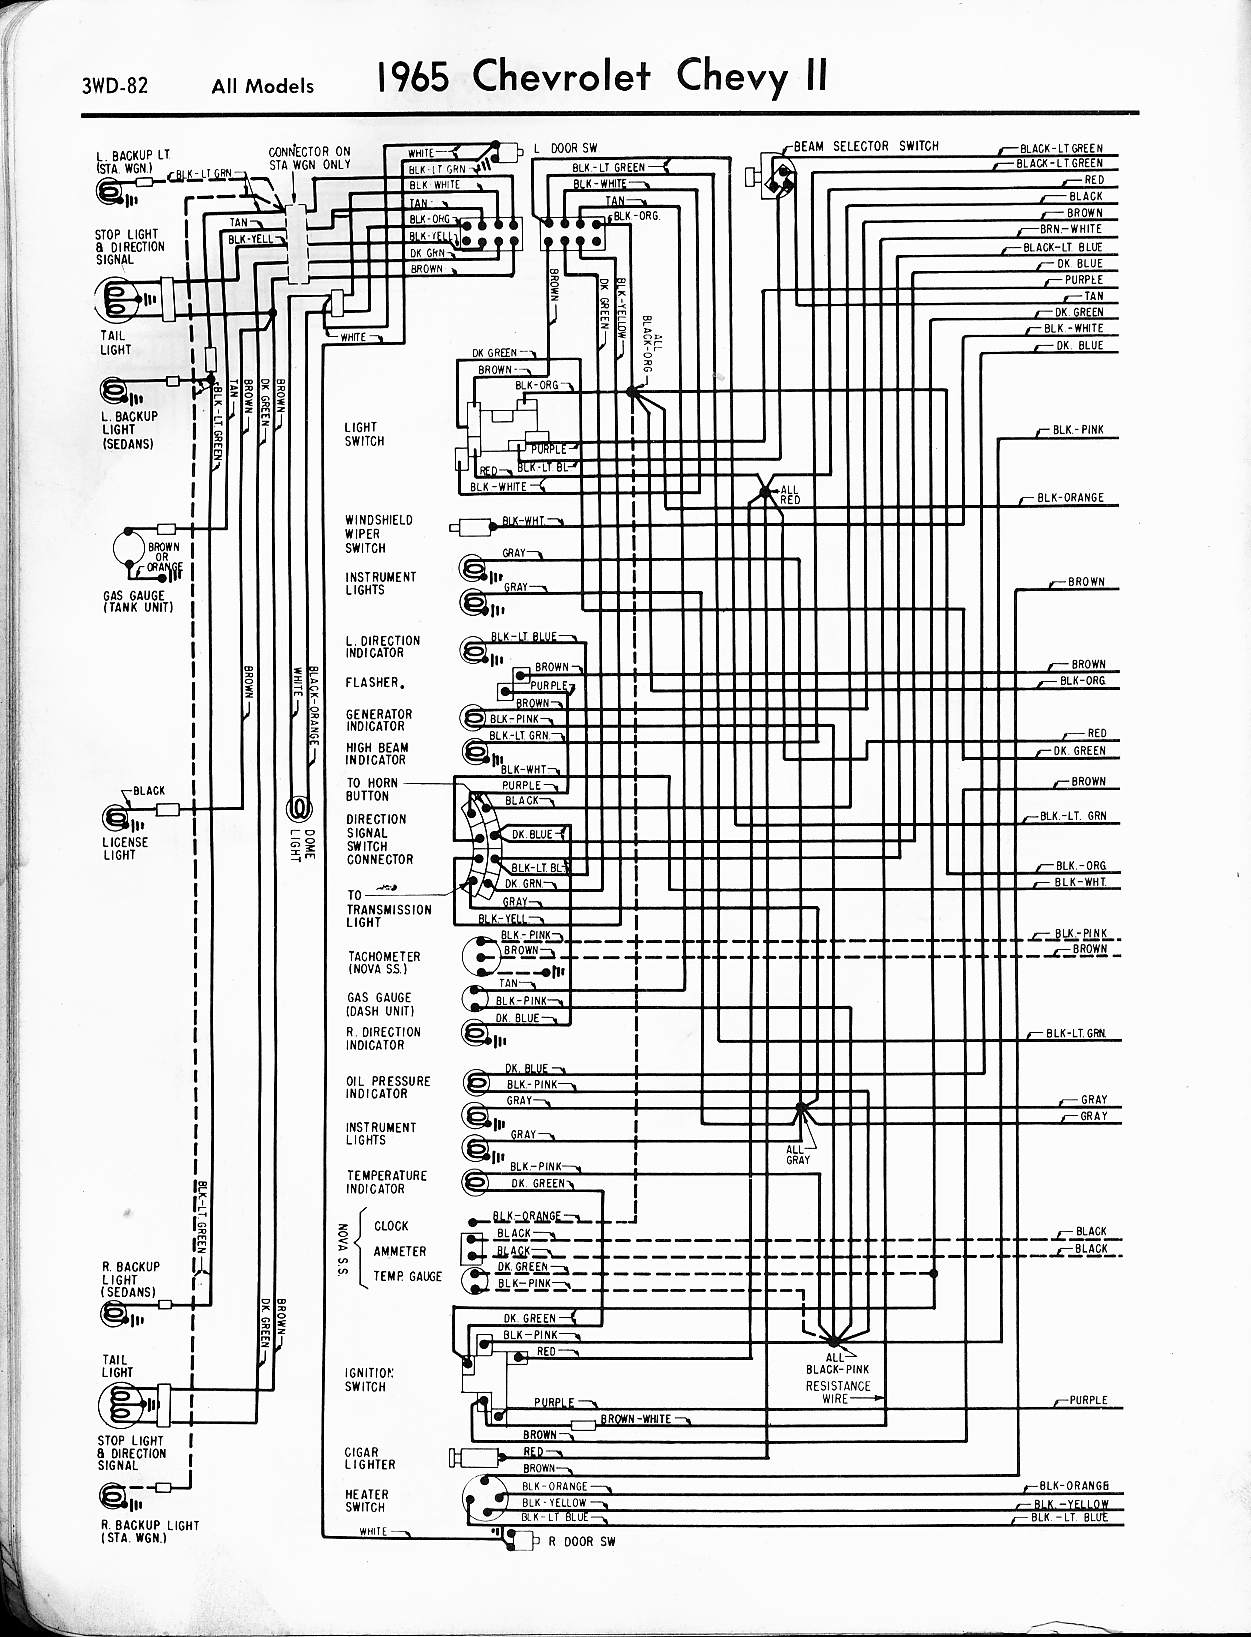 chevy ii wiring diagram color all wiring diagram chevy diagrams 2000 chevrolet truck wiring diagram 1965 chevy ii wiring diagram